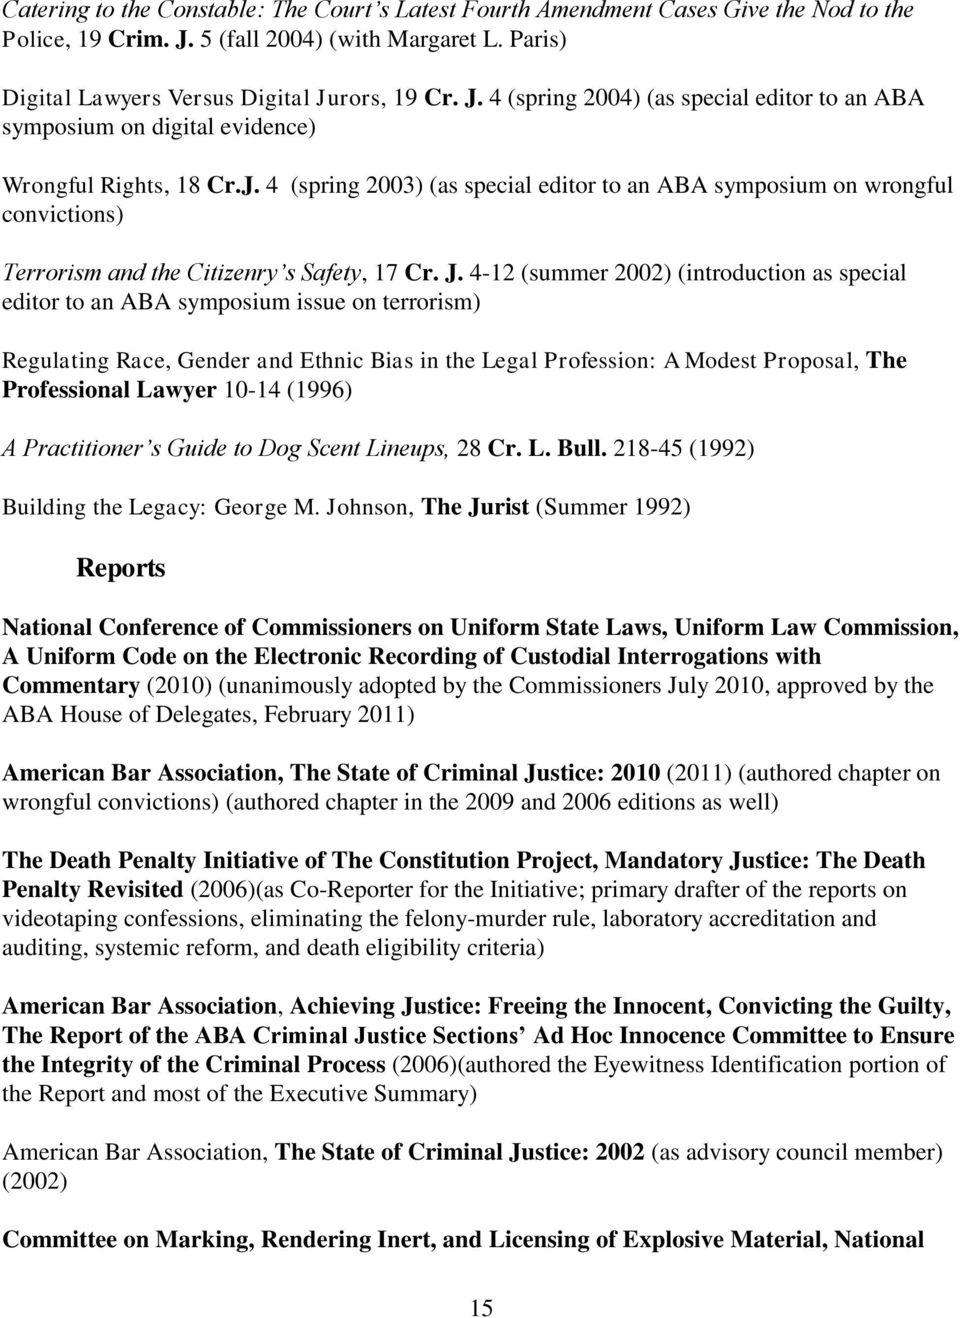 J. 4-12 (summer 2002) (introduction as special editor to an ABA symposium issue on terrorism) Regulating Race, Gender and Ethnic Bias in the Legal Profession: A Modest Proposal, The Professional